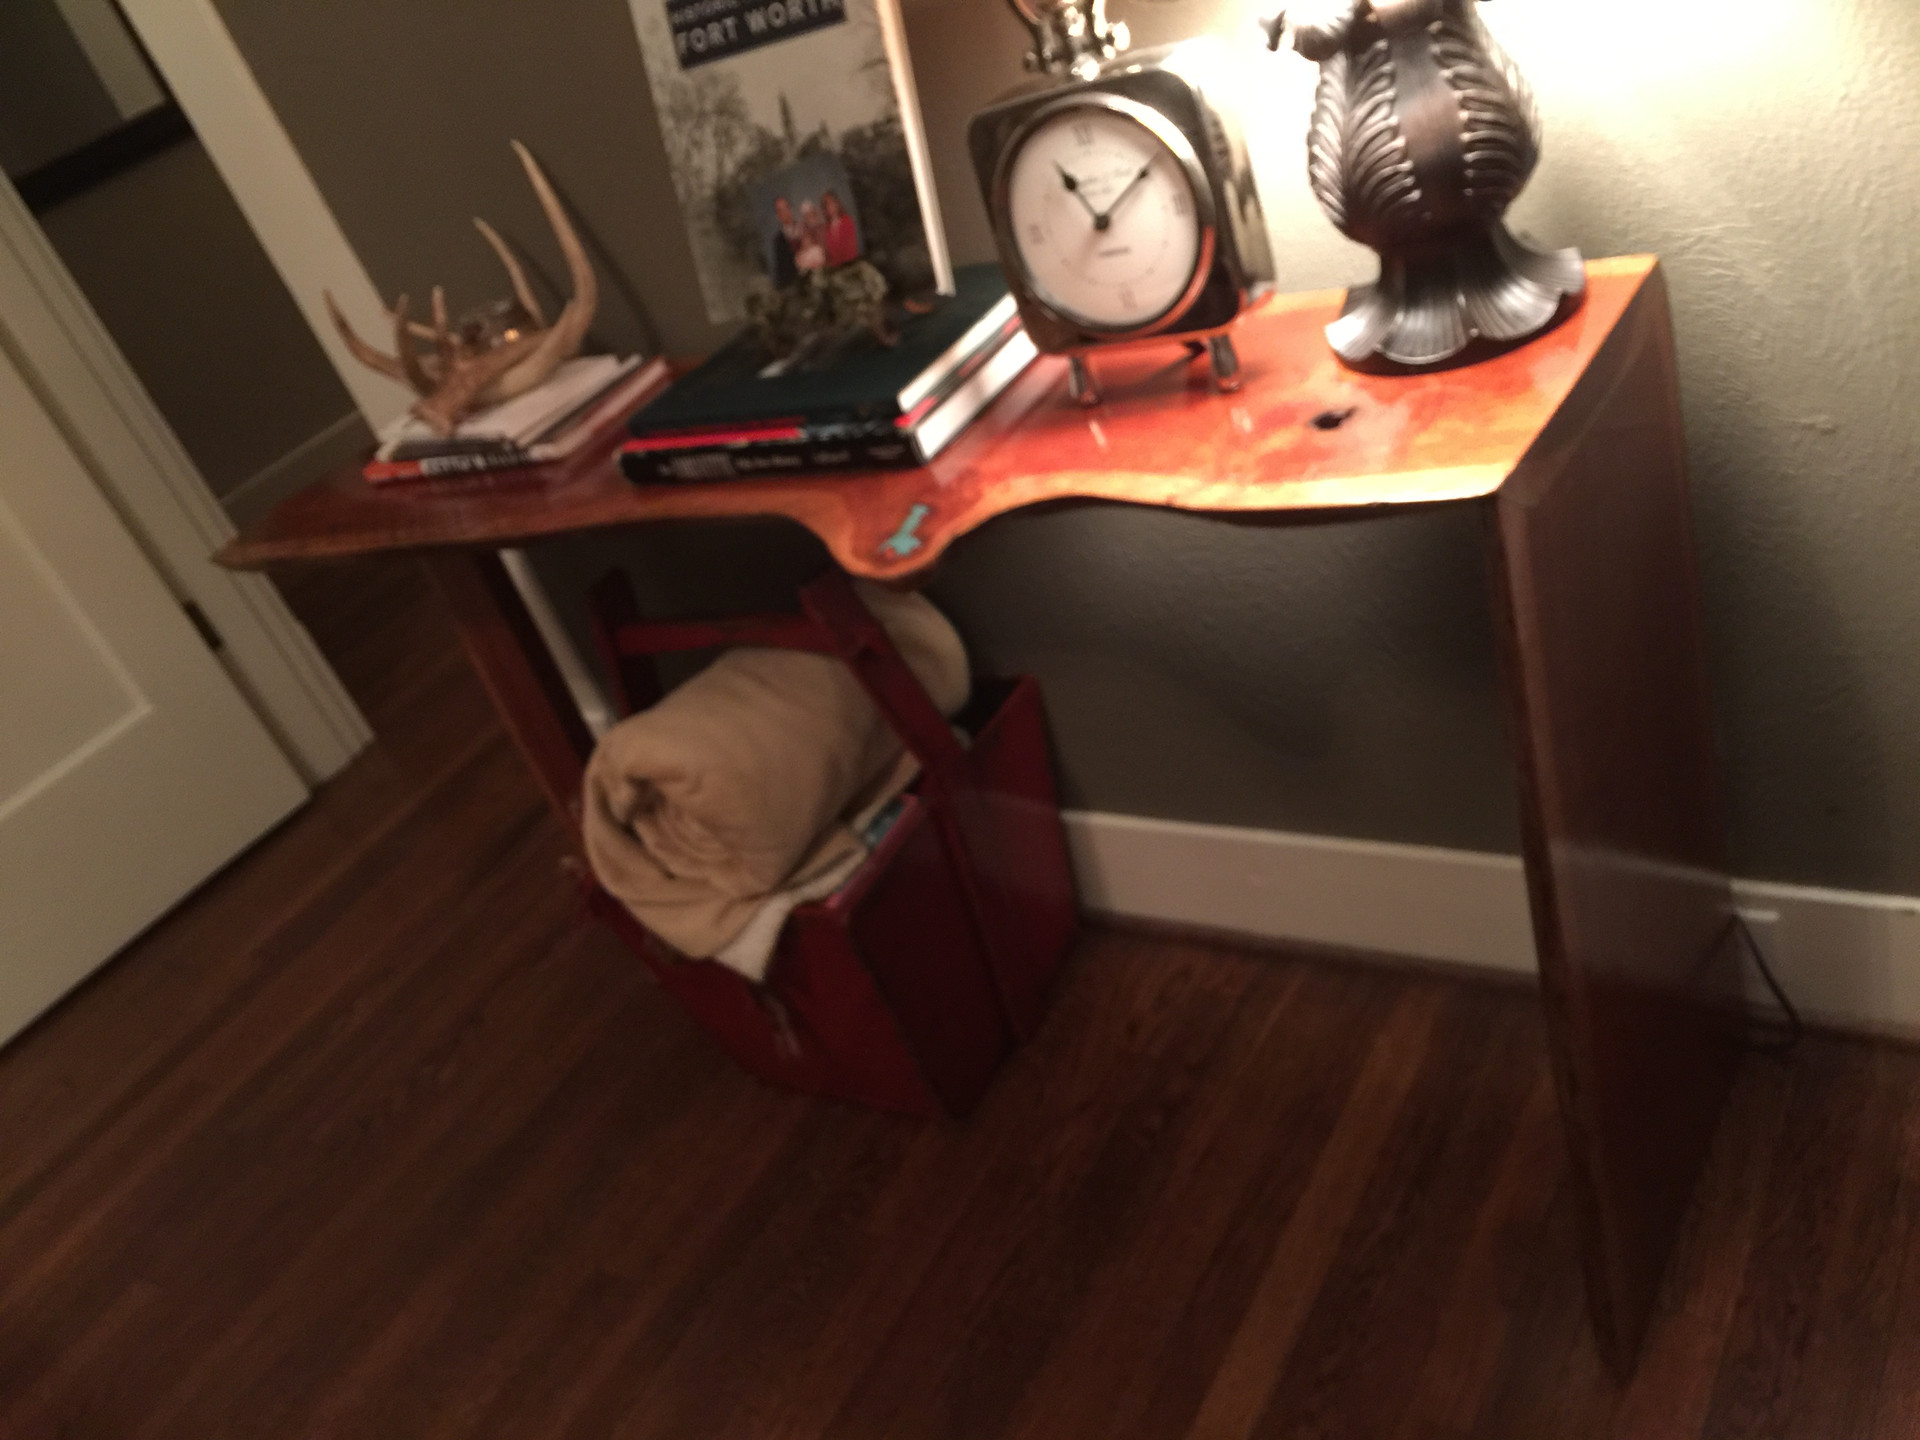 Live Edge Cherrywood Waterfall Console table